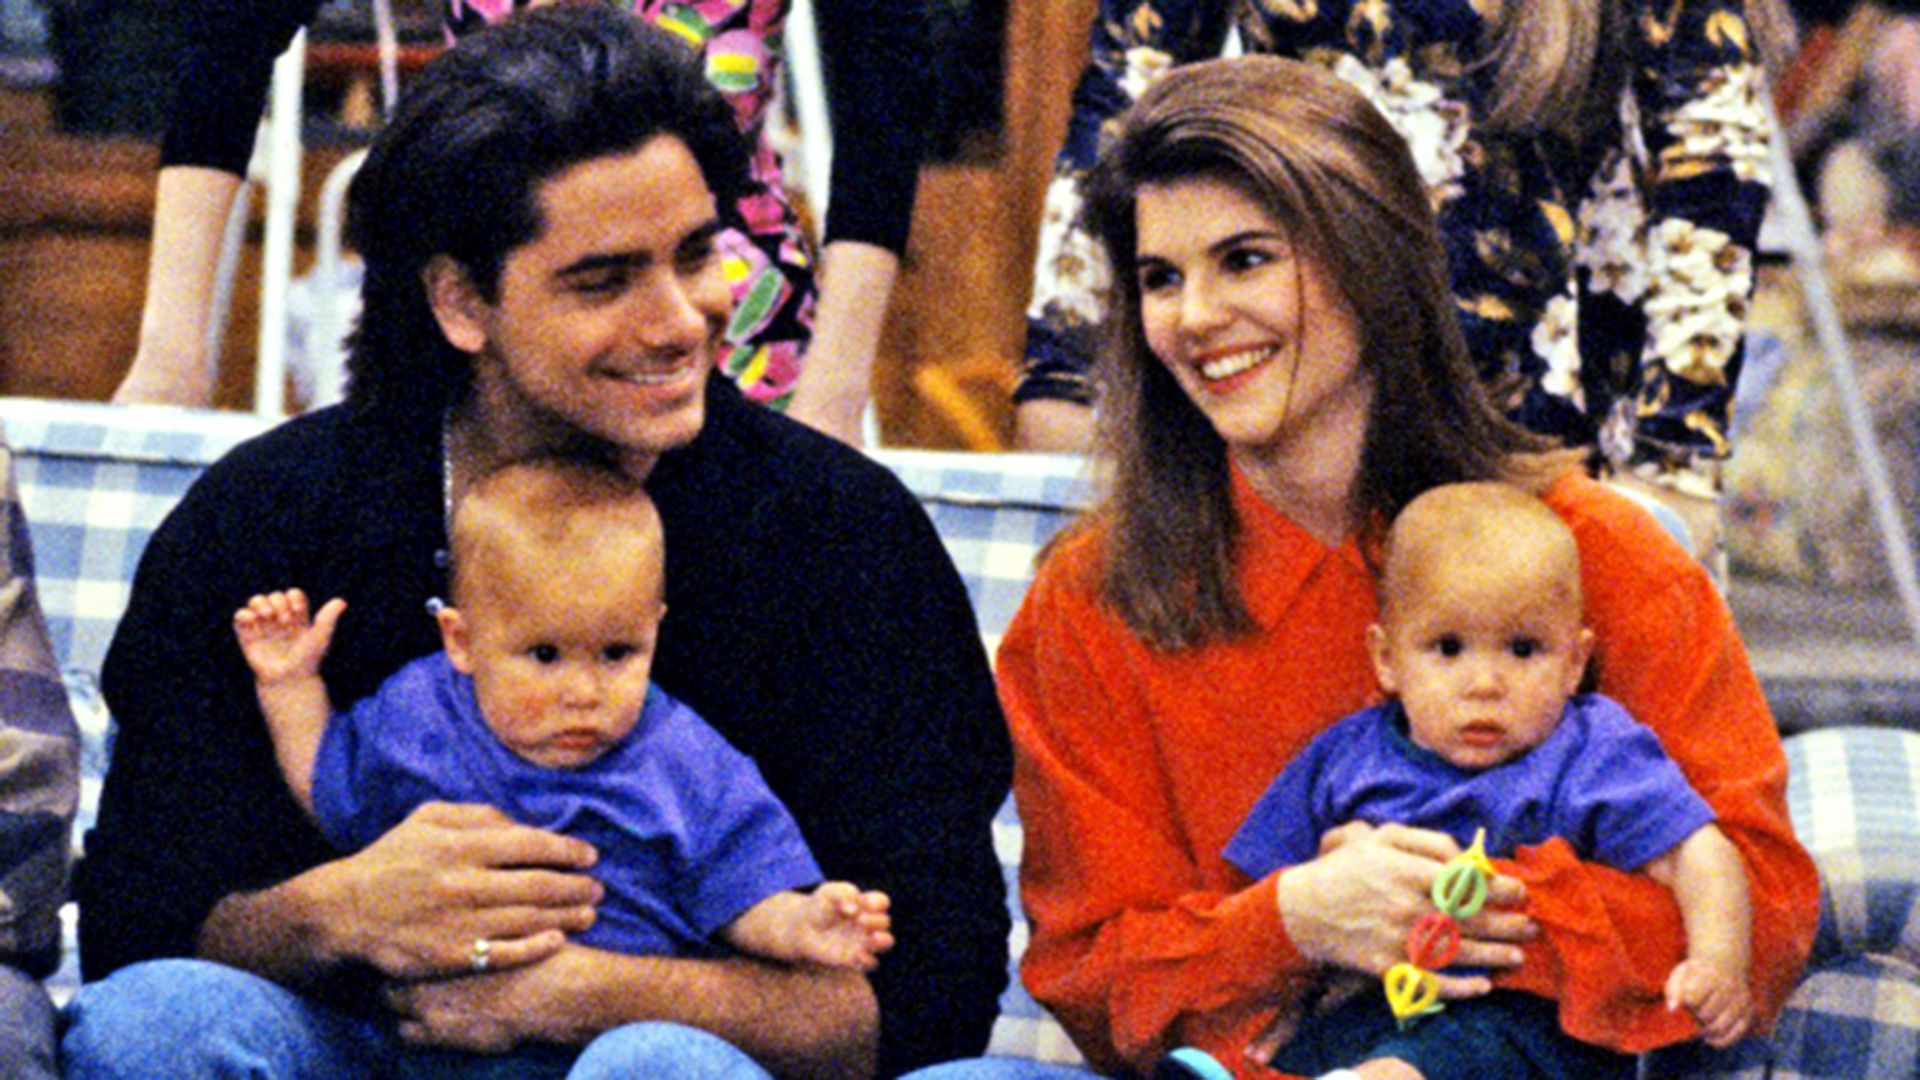 Lori Loughlin shares sweet then and now photos with Full House